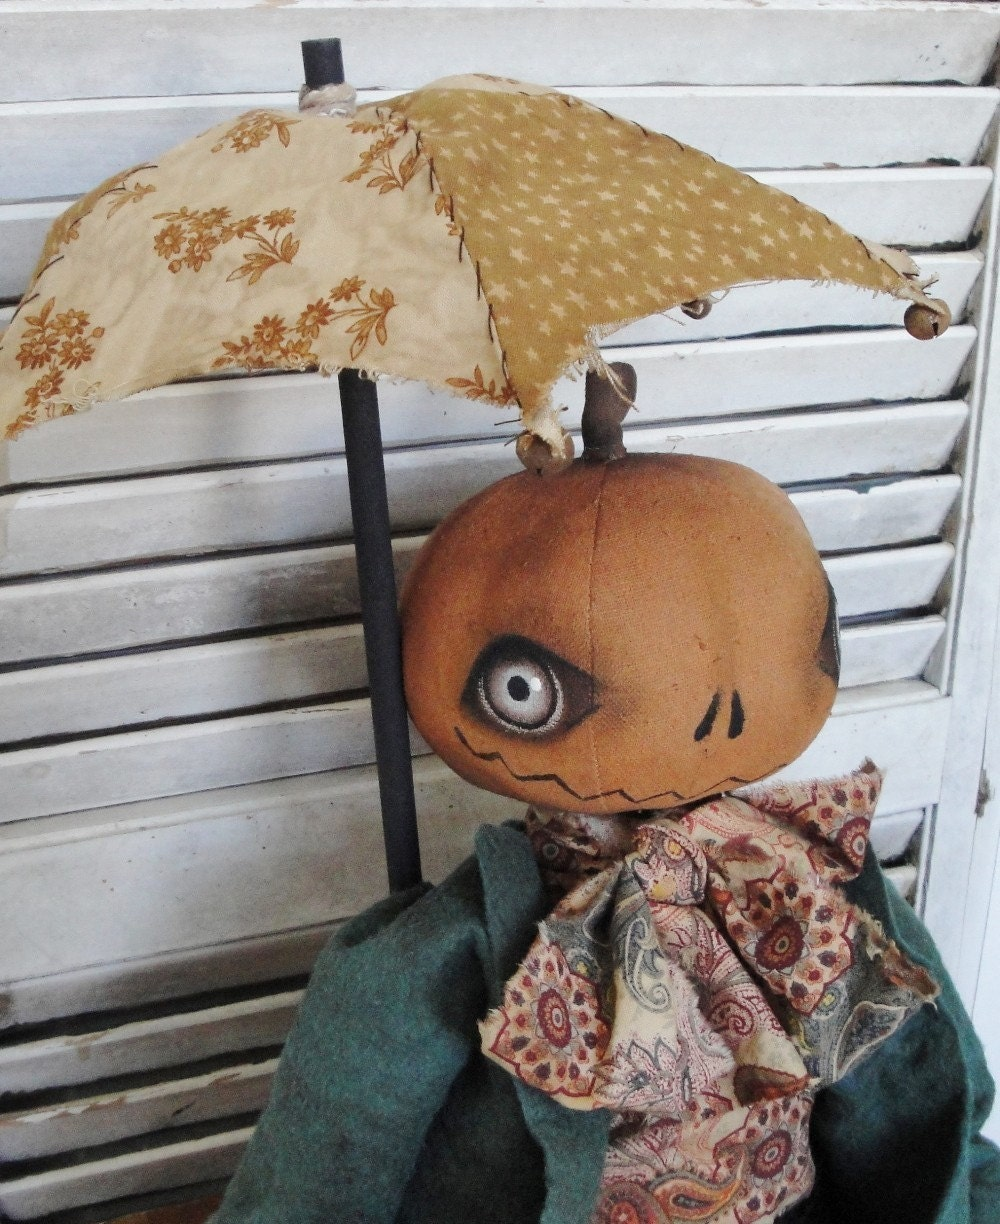 EPATTERN Primitive Folk Art Halloween Pumpkin Doll SALE - thevintagepolkadot